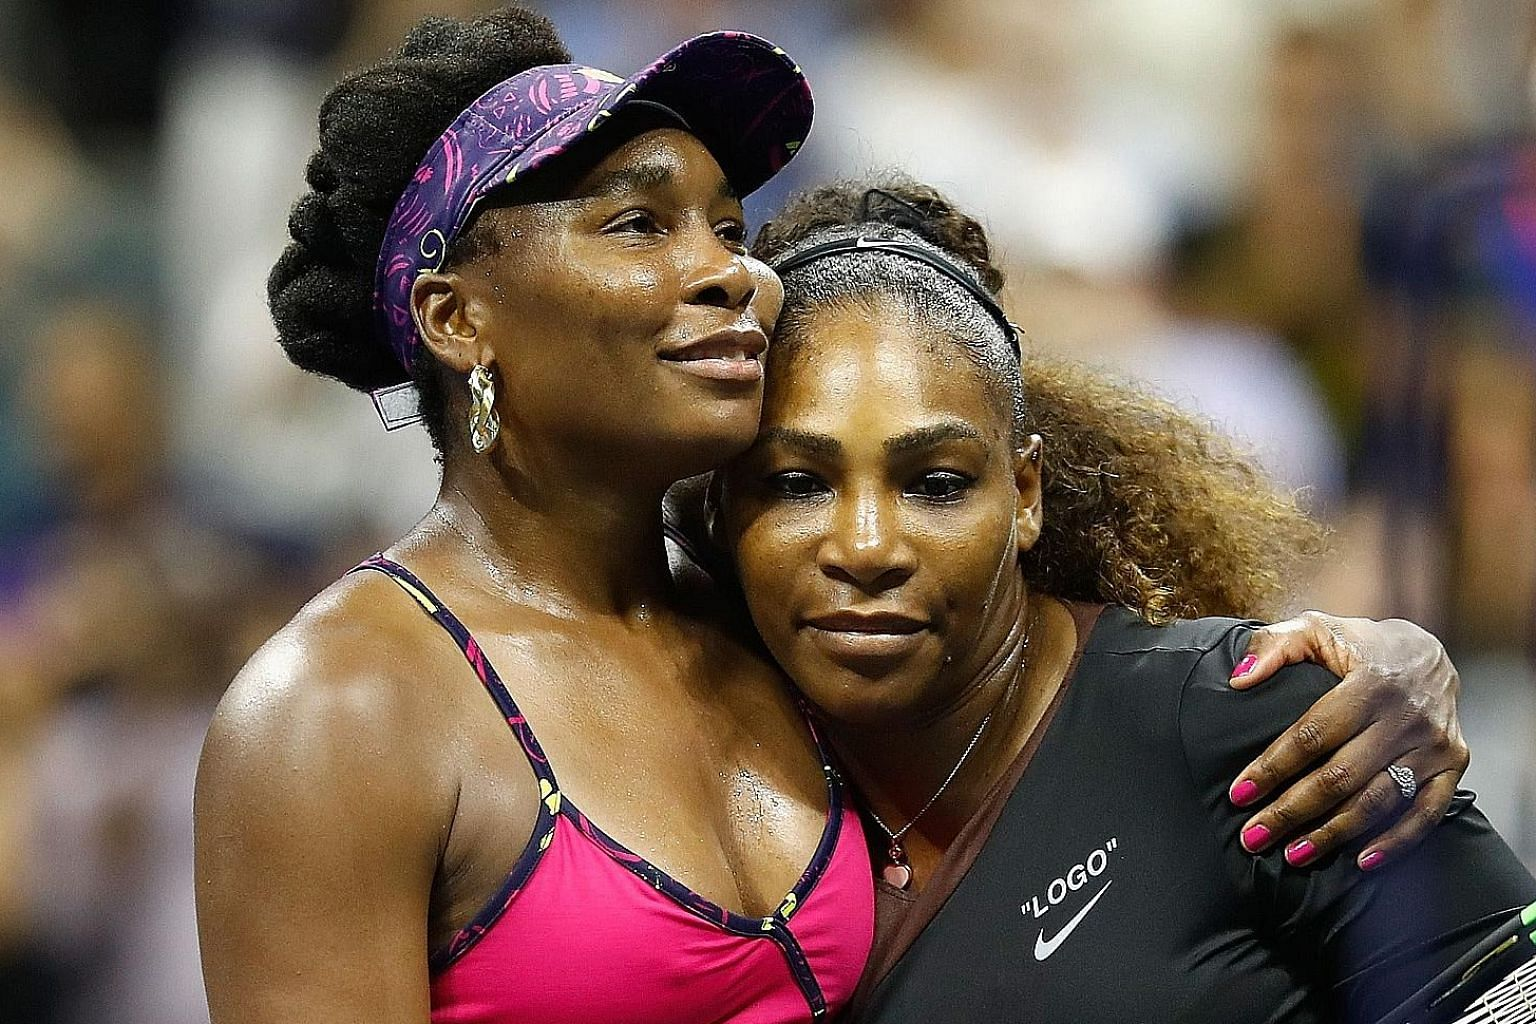 For Serena Williams (right) and her sister Venus, the story continues for now - as does their rivalry on the court.